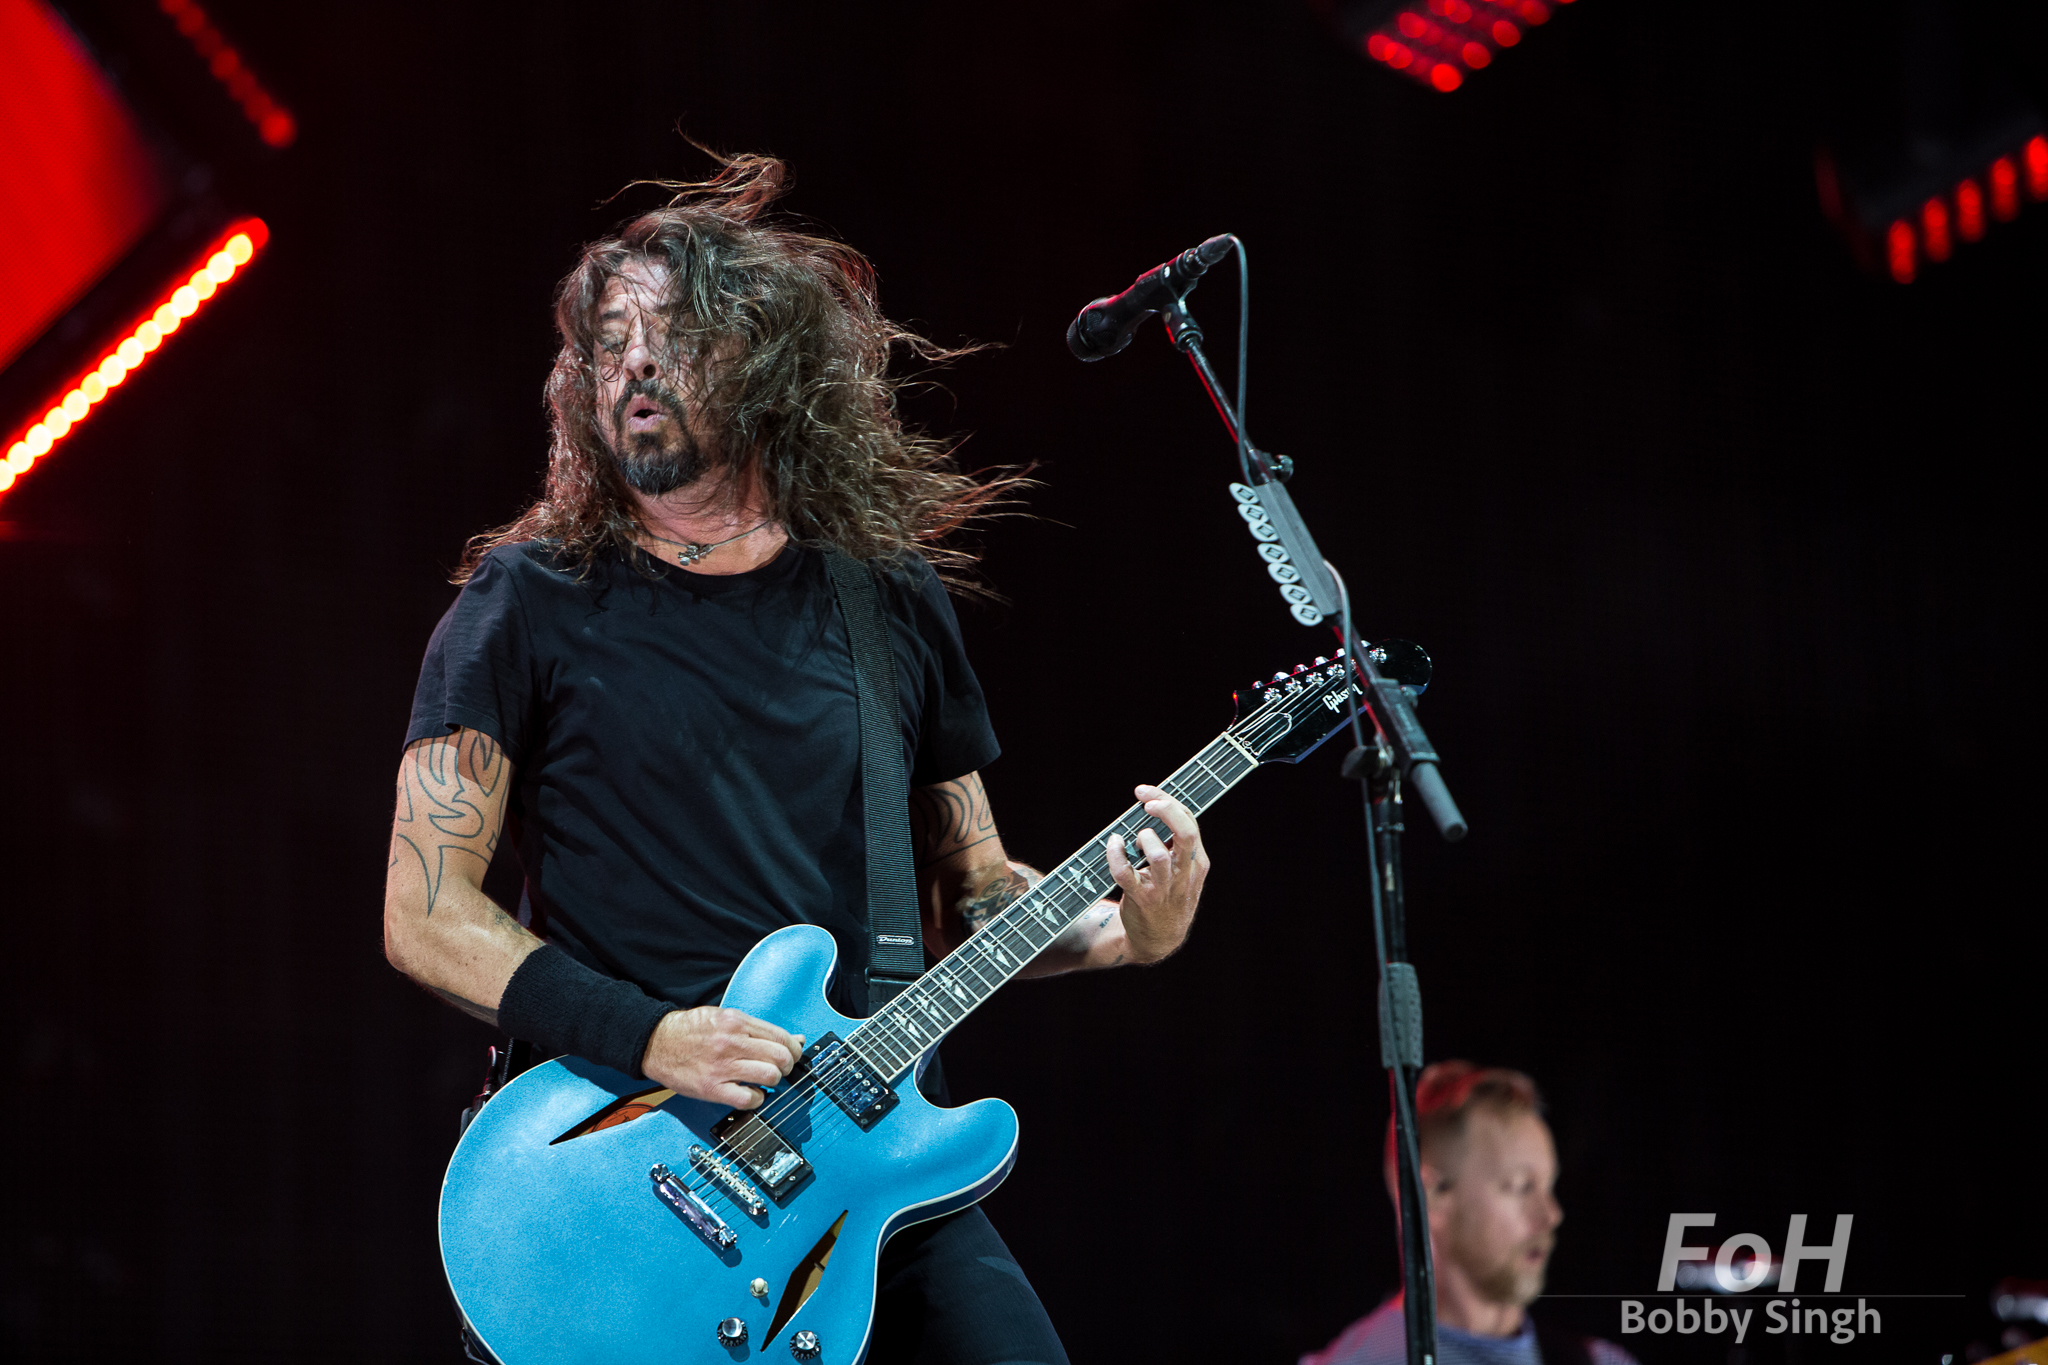 foofighters-0146.jpg